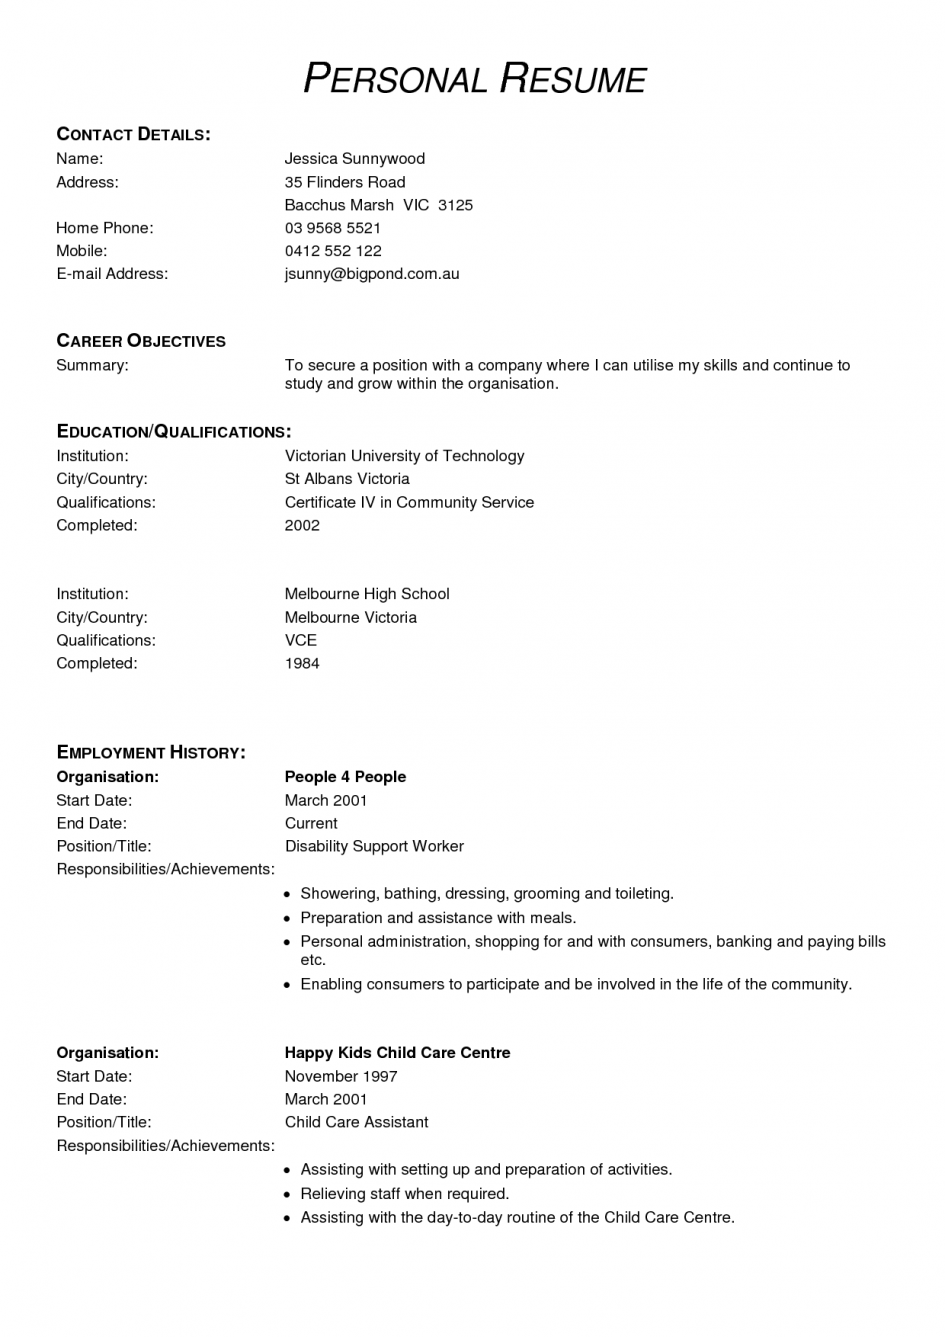 Resume Examples Medical Assistant Healthcareassistantcvwithnoexperience 945×1337